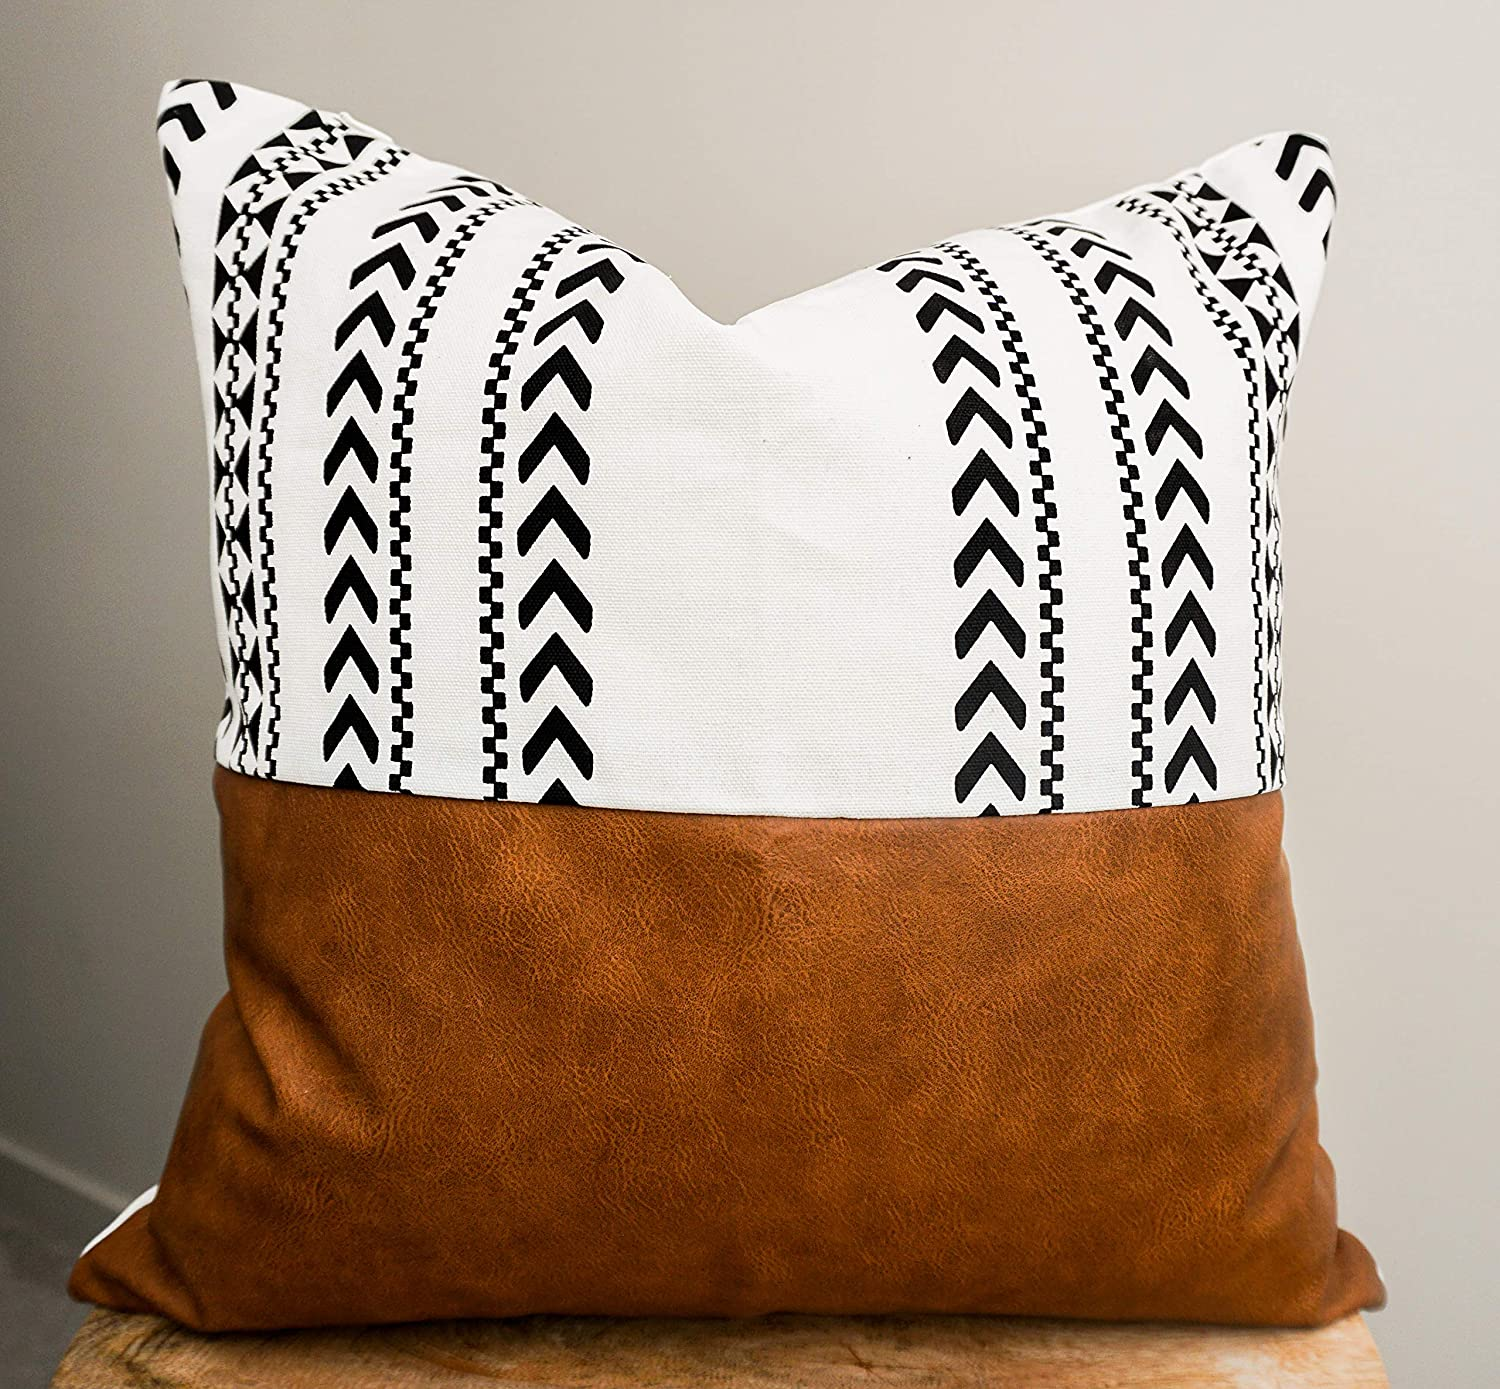 Ekka Moderna Faux Leather and 100% Cotton Decorative Throw Pillow Covers for Couch Bed Sofa, 18 x 18 inch Modern Home Decor Accent Square Living Room Cushion Cases Cognac Brown Black and White (Mesa)